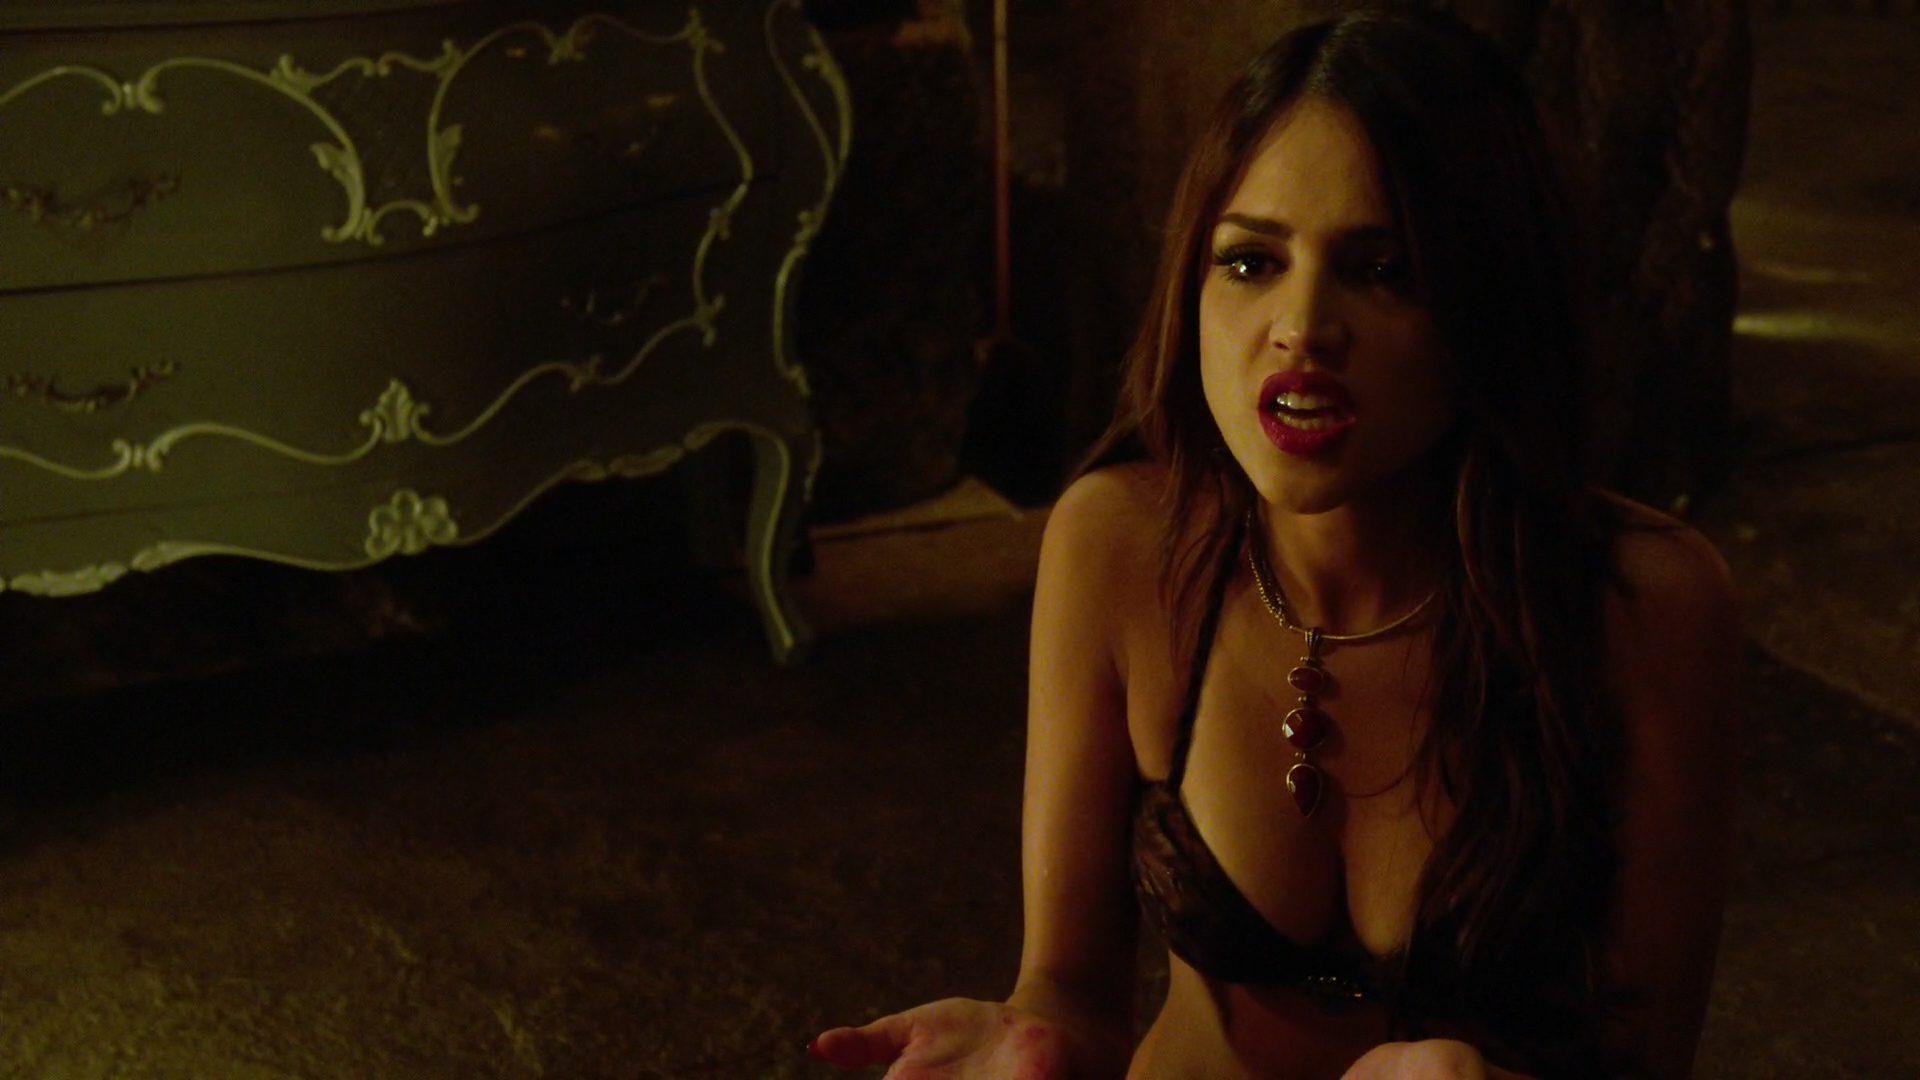 eiza gonzalez nude video